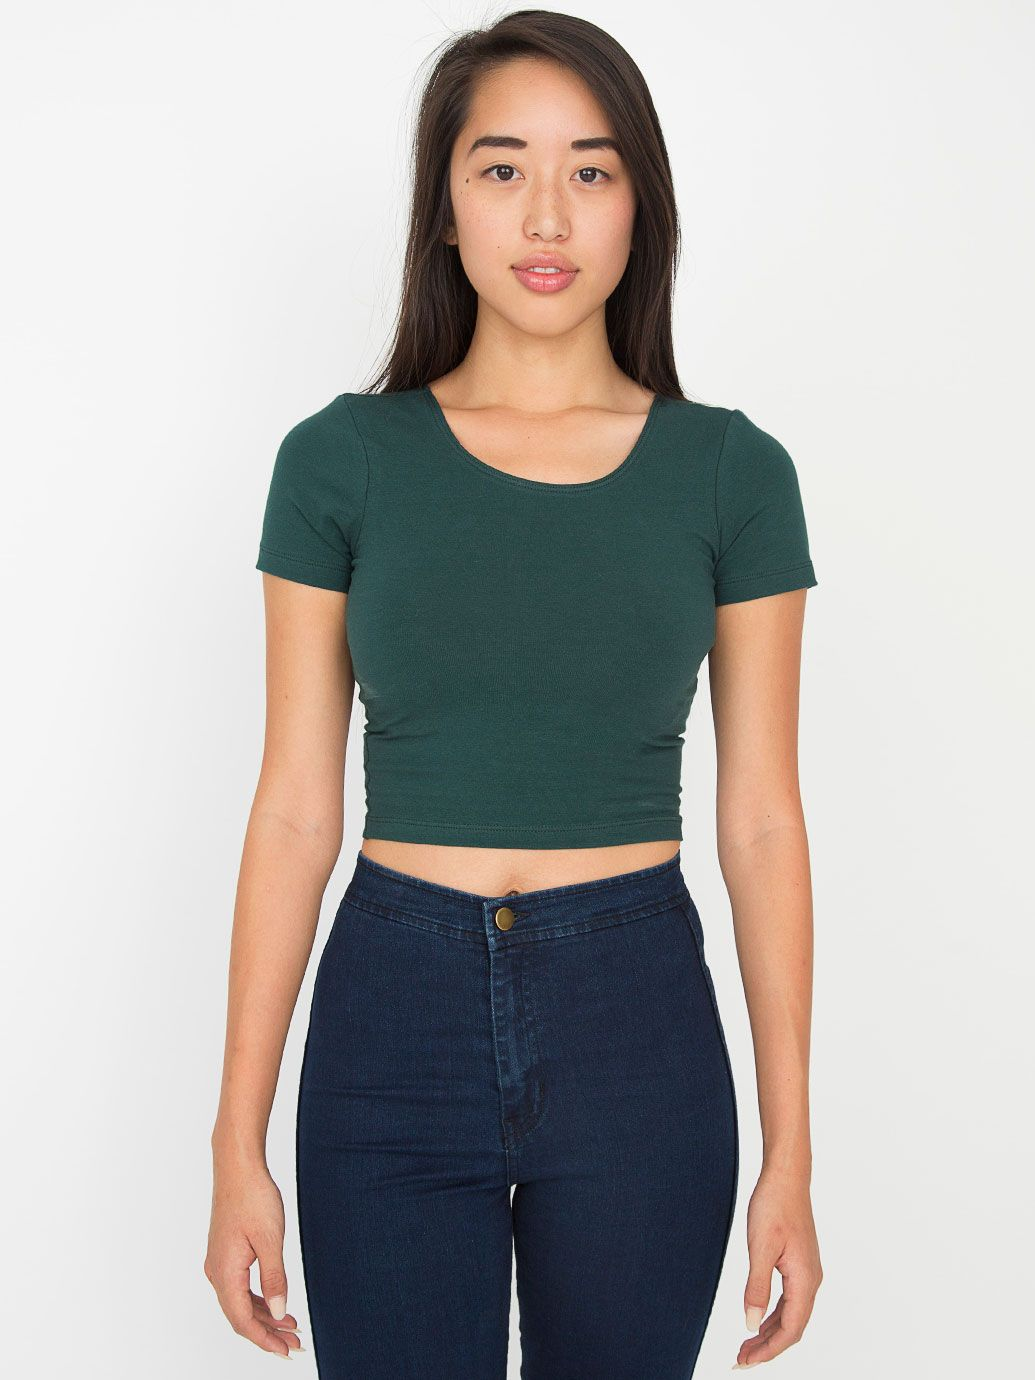 982af1ffd81 American Apparel Cotton Spandex Jersey Crop Tee - Evan Webster INK